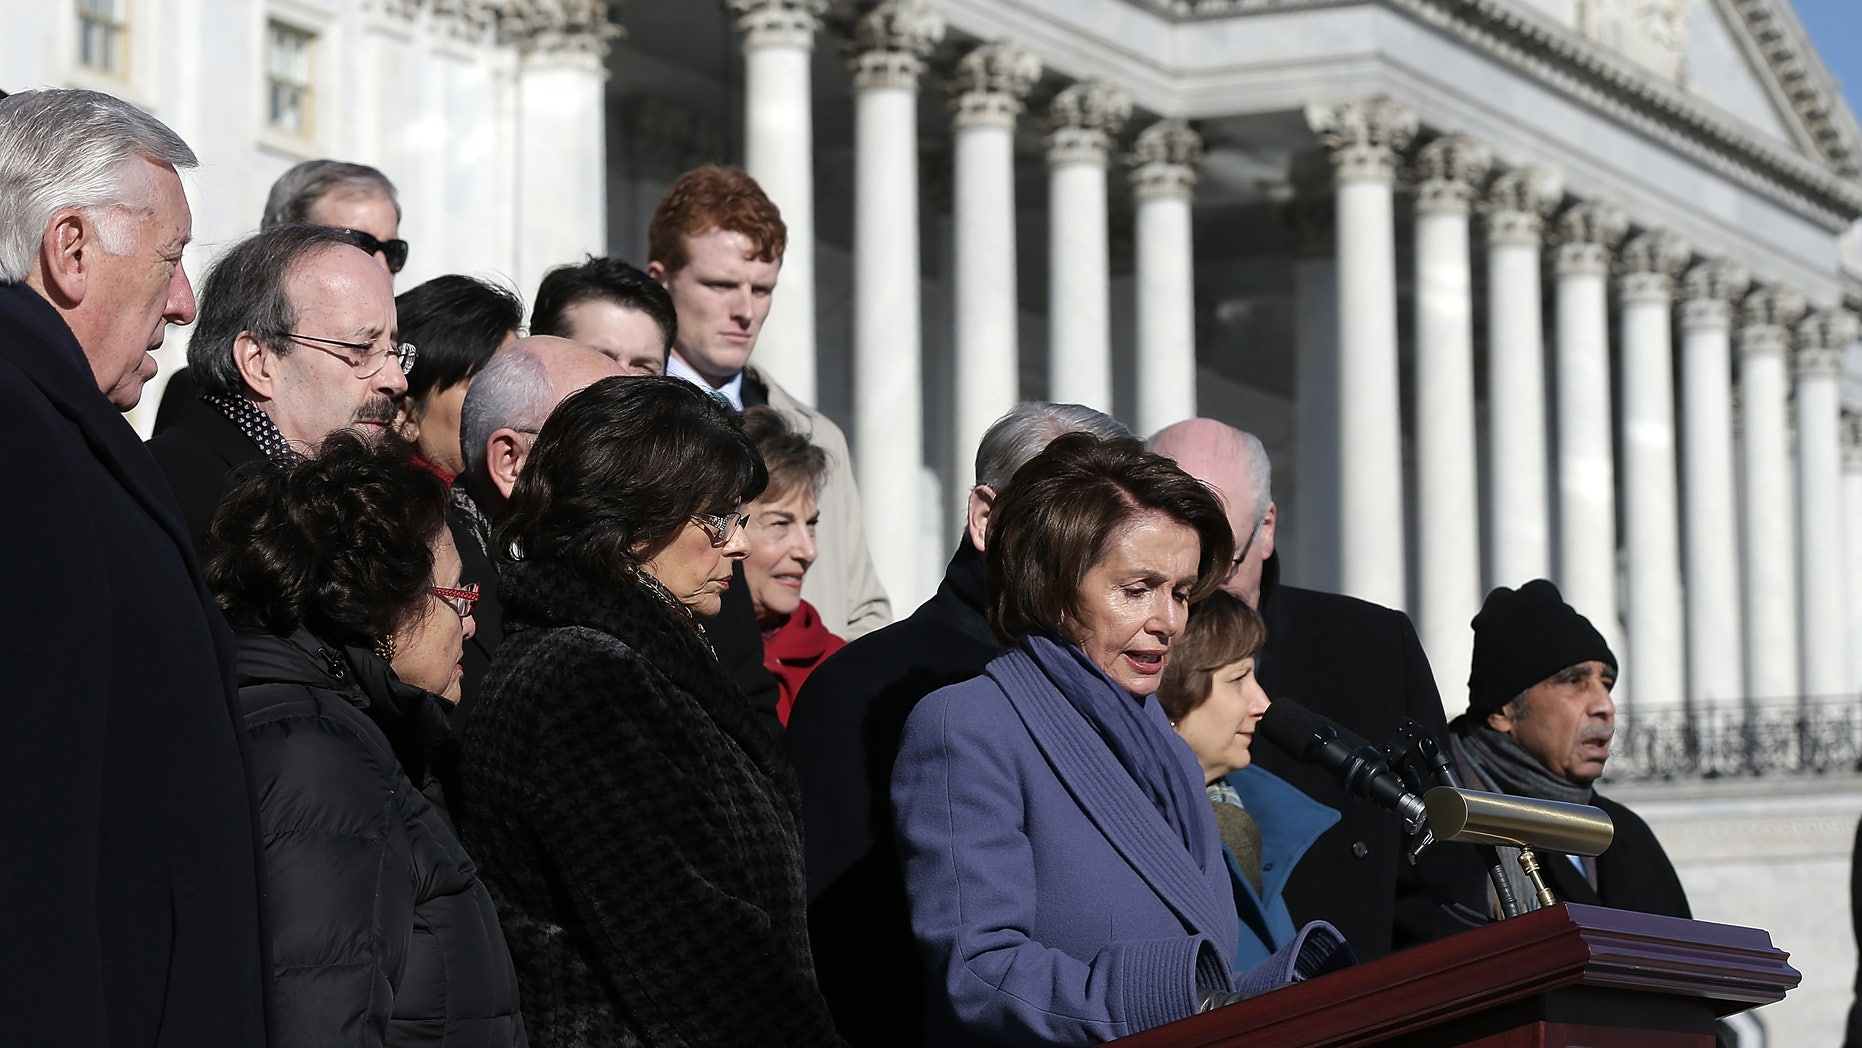 """WASHINGTON, DC - FEBRUARY 13:  House Minority Leader Nancy Pelosi (D-CA), joined by other members of the House Democratic caucus, speaks during a news conference on the steps of the U.S. Capitol February 13, 2015 in Washington, DC. House Democrats held the news conference to call on House Republicans to pass a """"clean"""" funding bill for the Department of Homeland Security. (Photo by Win McNamee/Getty Images)"""